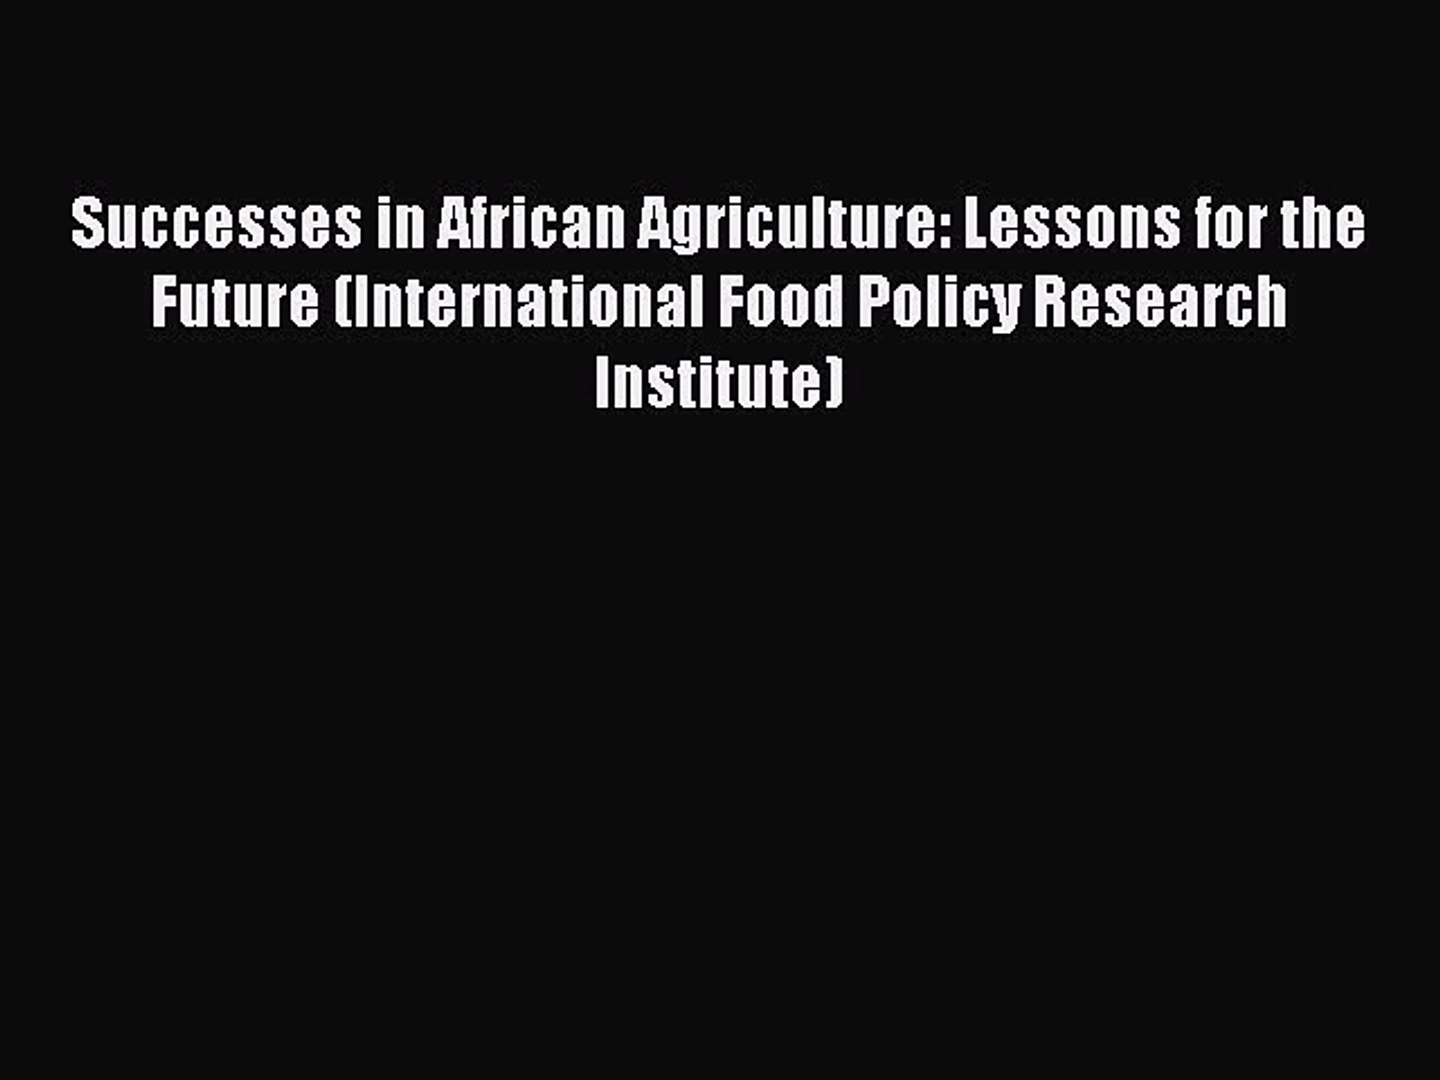 Read Successes in African Agriculture: Lessons for the Future (International Food Policy Research